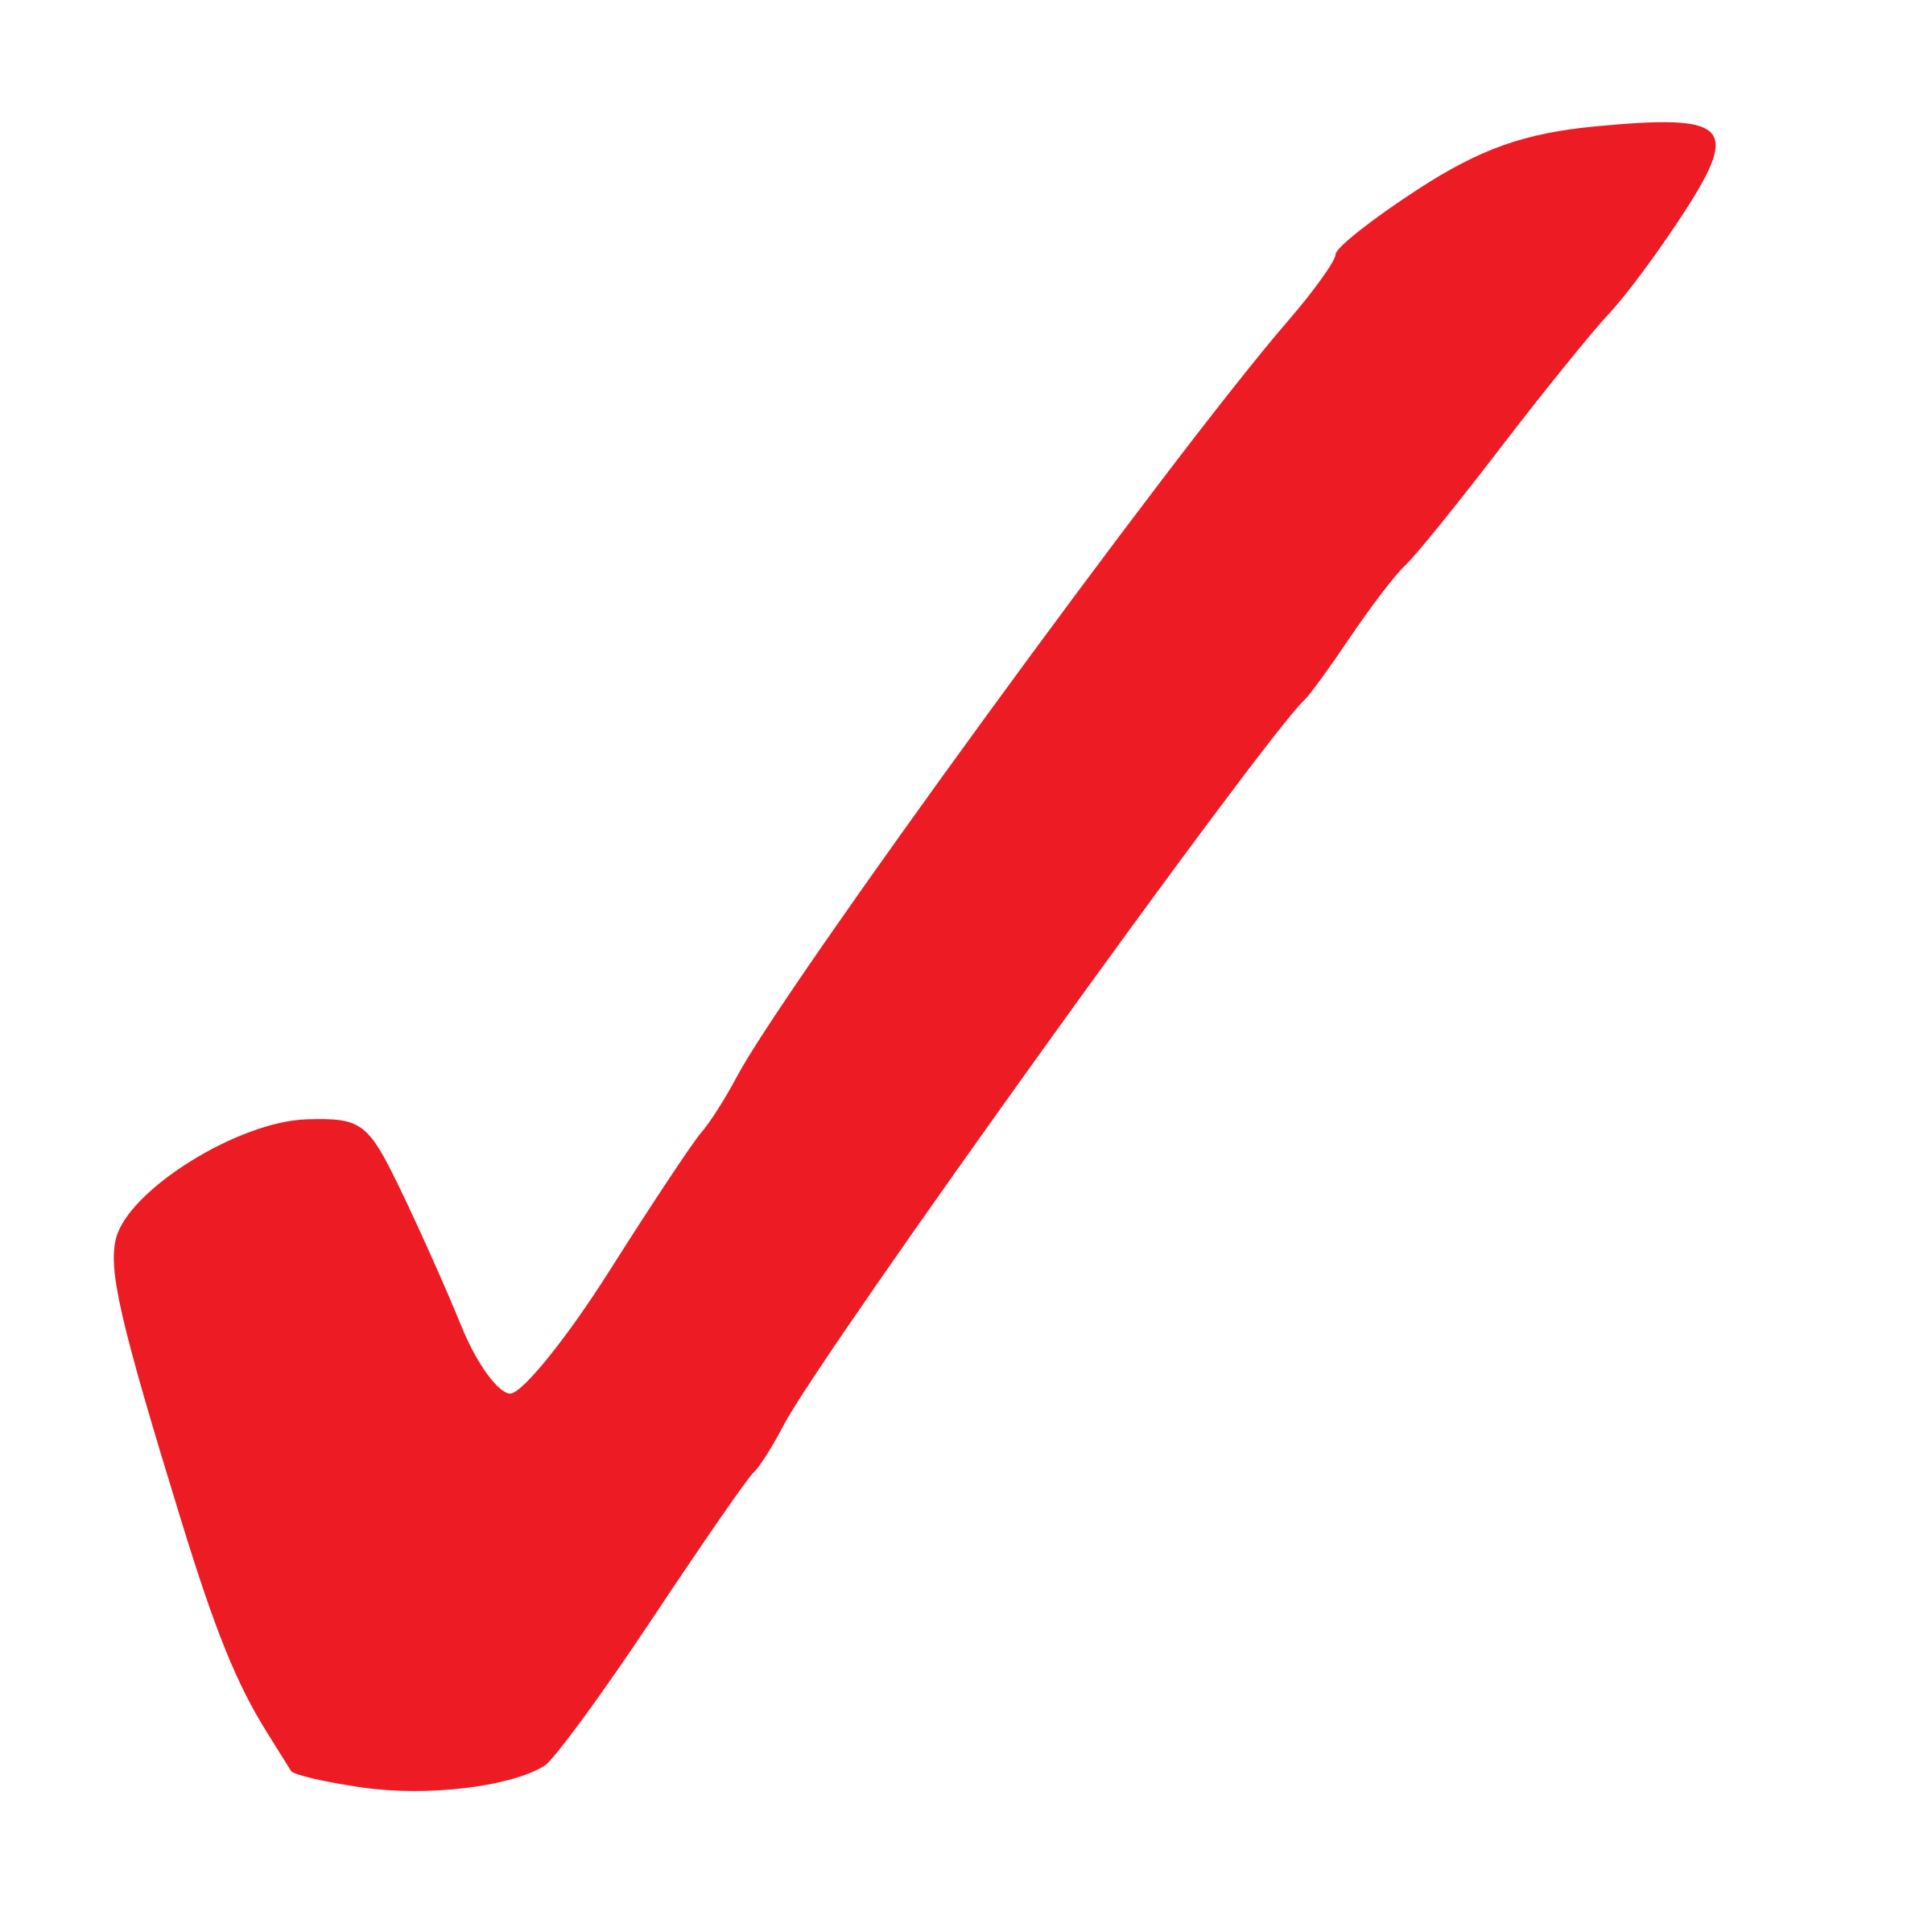 Check mark icon png. Clipart simple red checkmark